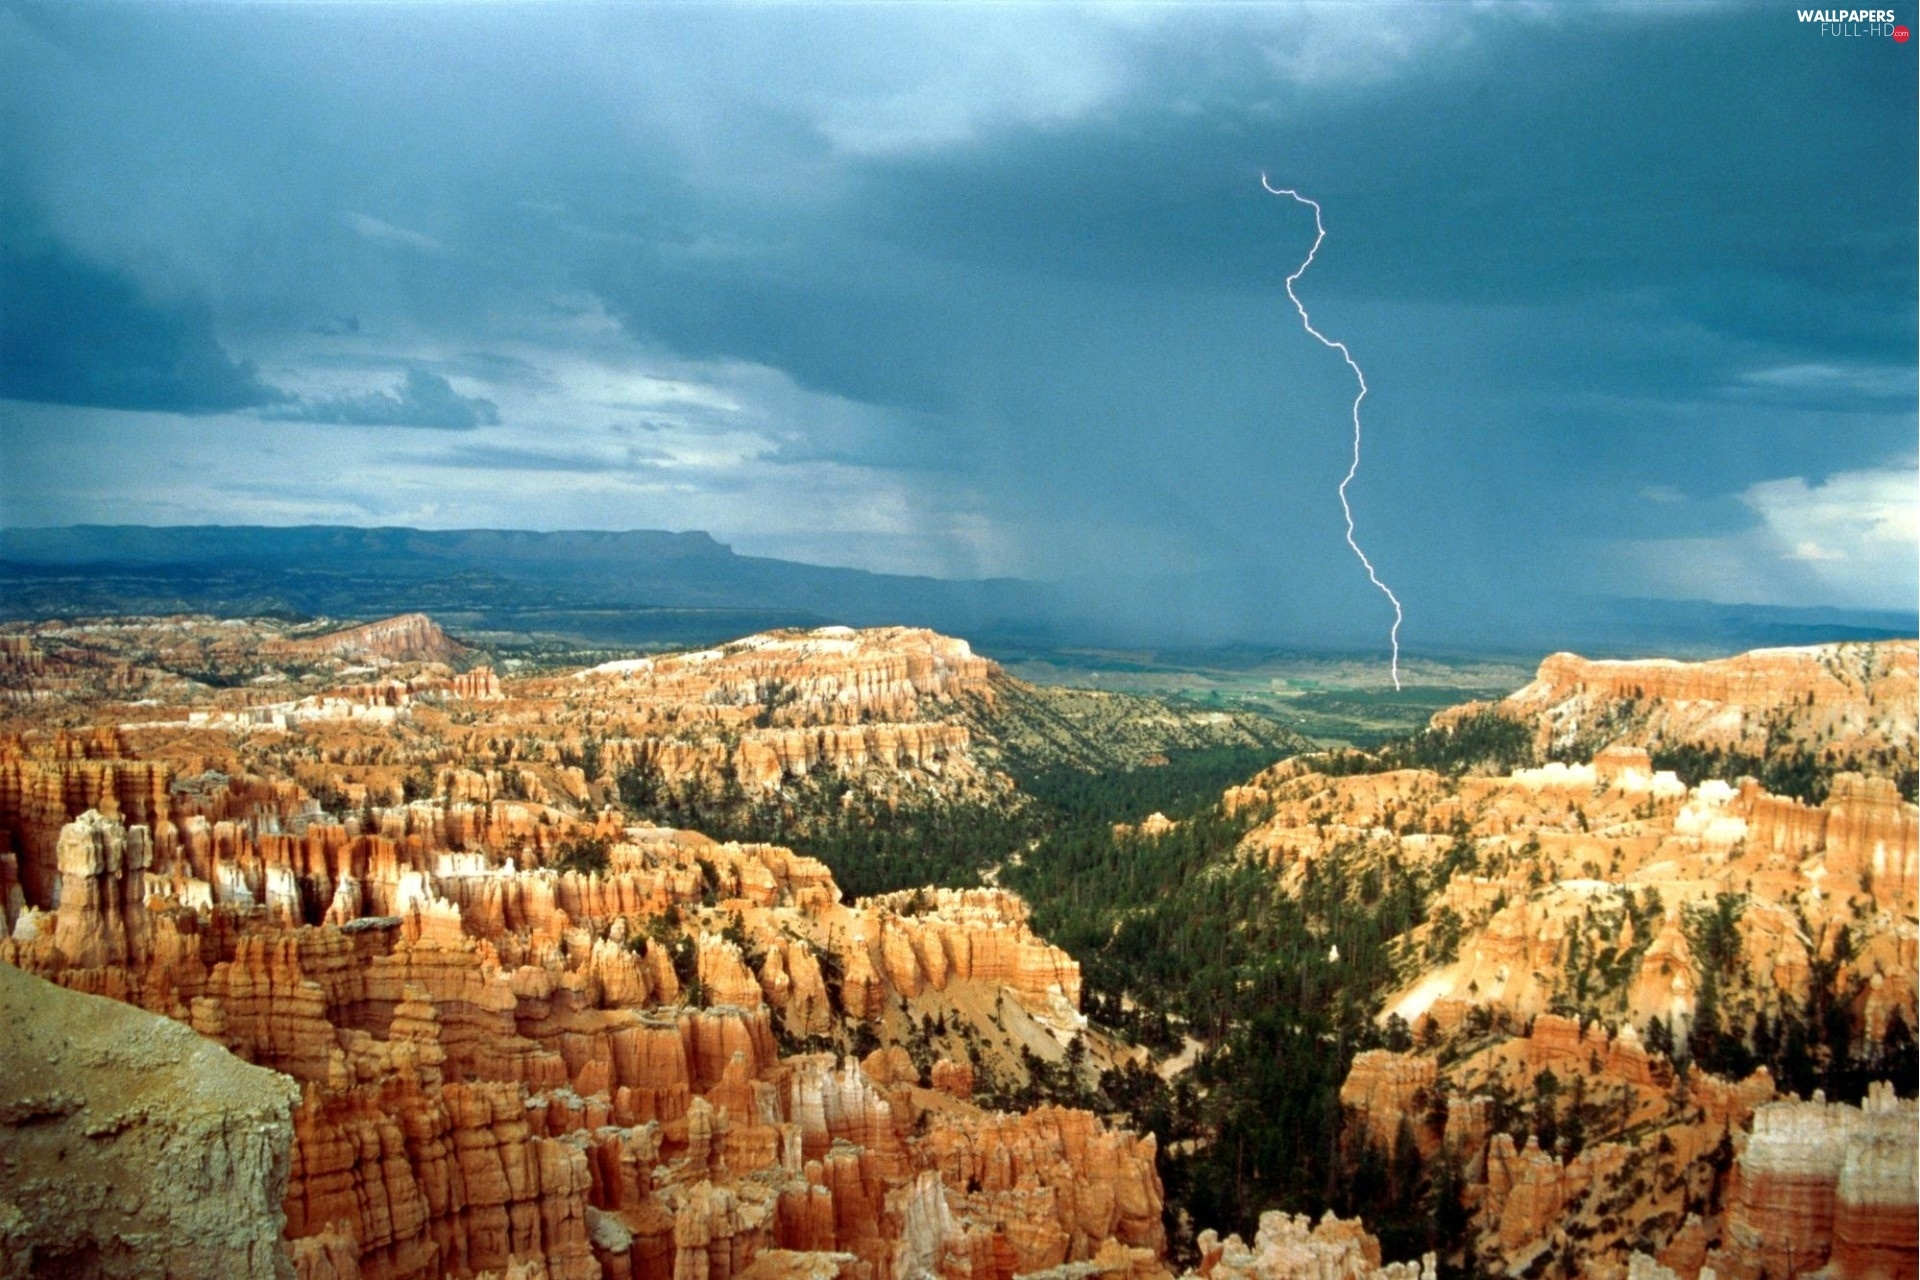 canyons, Mountains, Landscapes, Storms